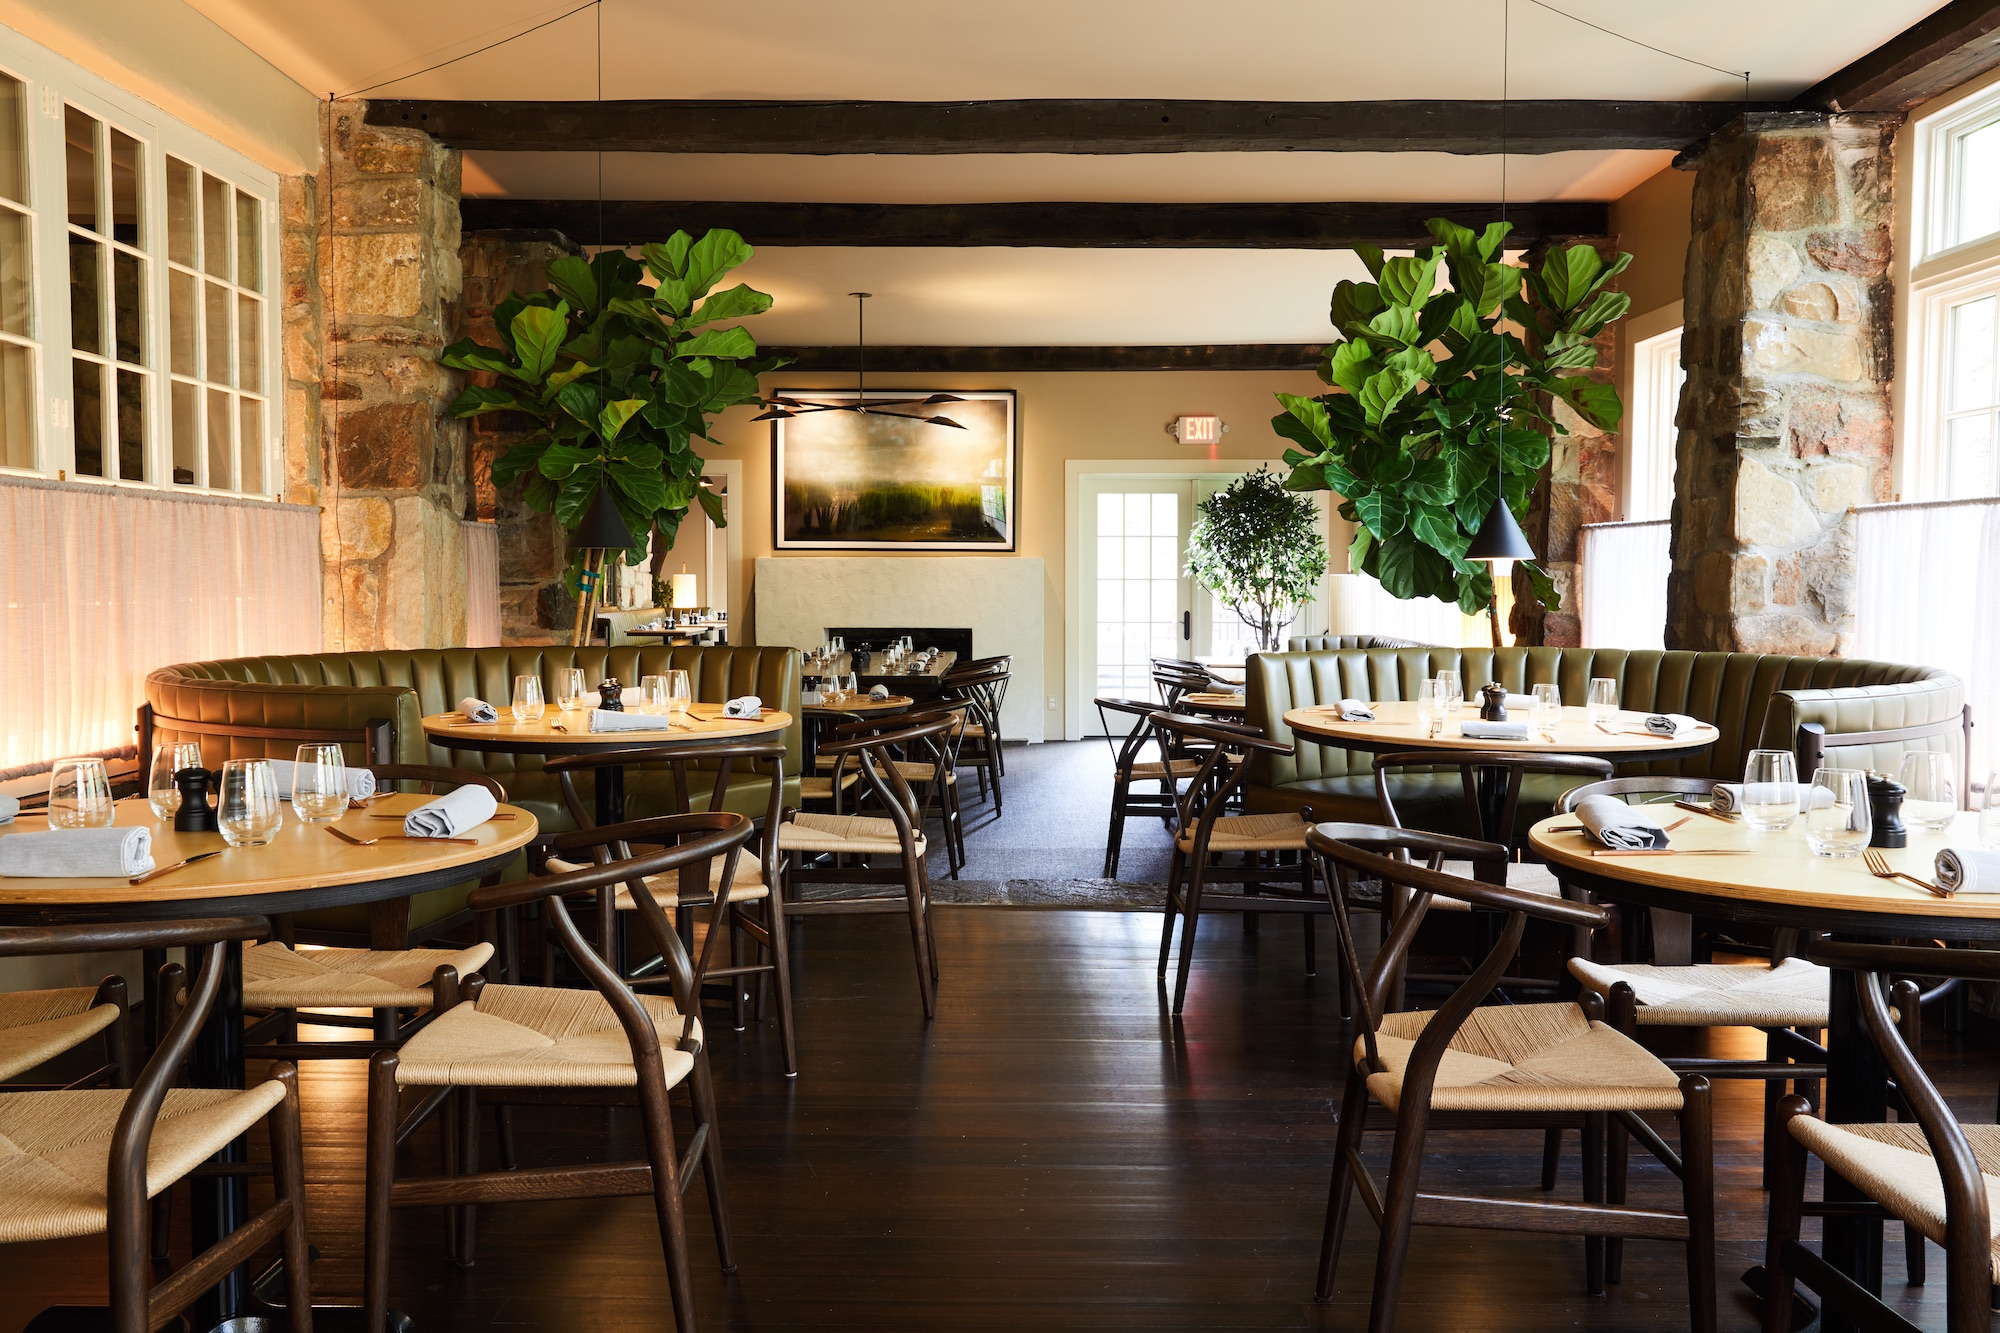 MBO_Troutbeck_Interiors_Restaurant_017